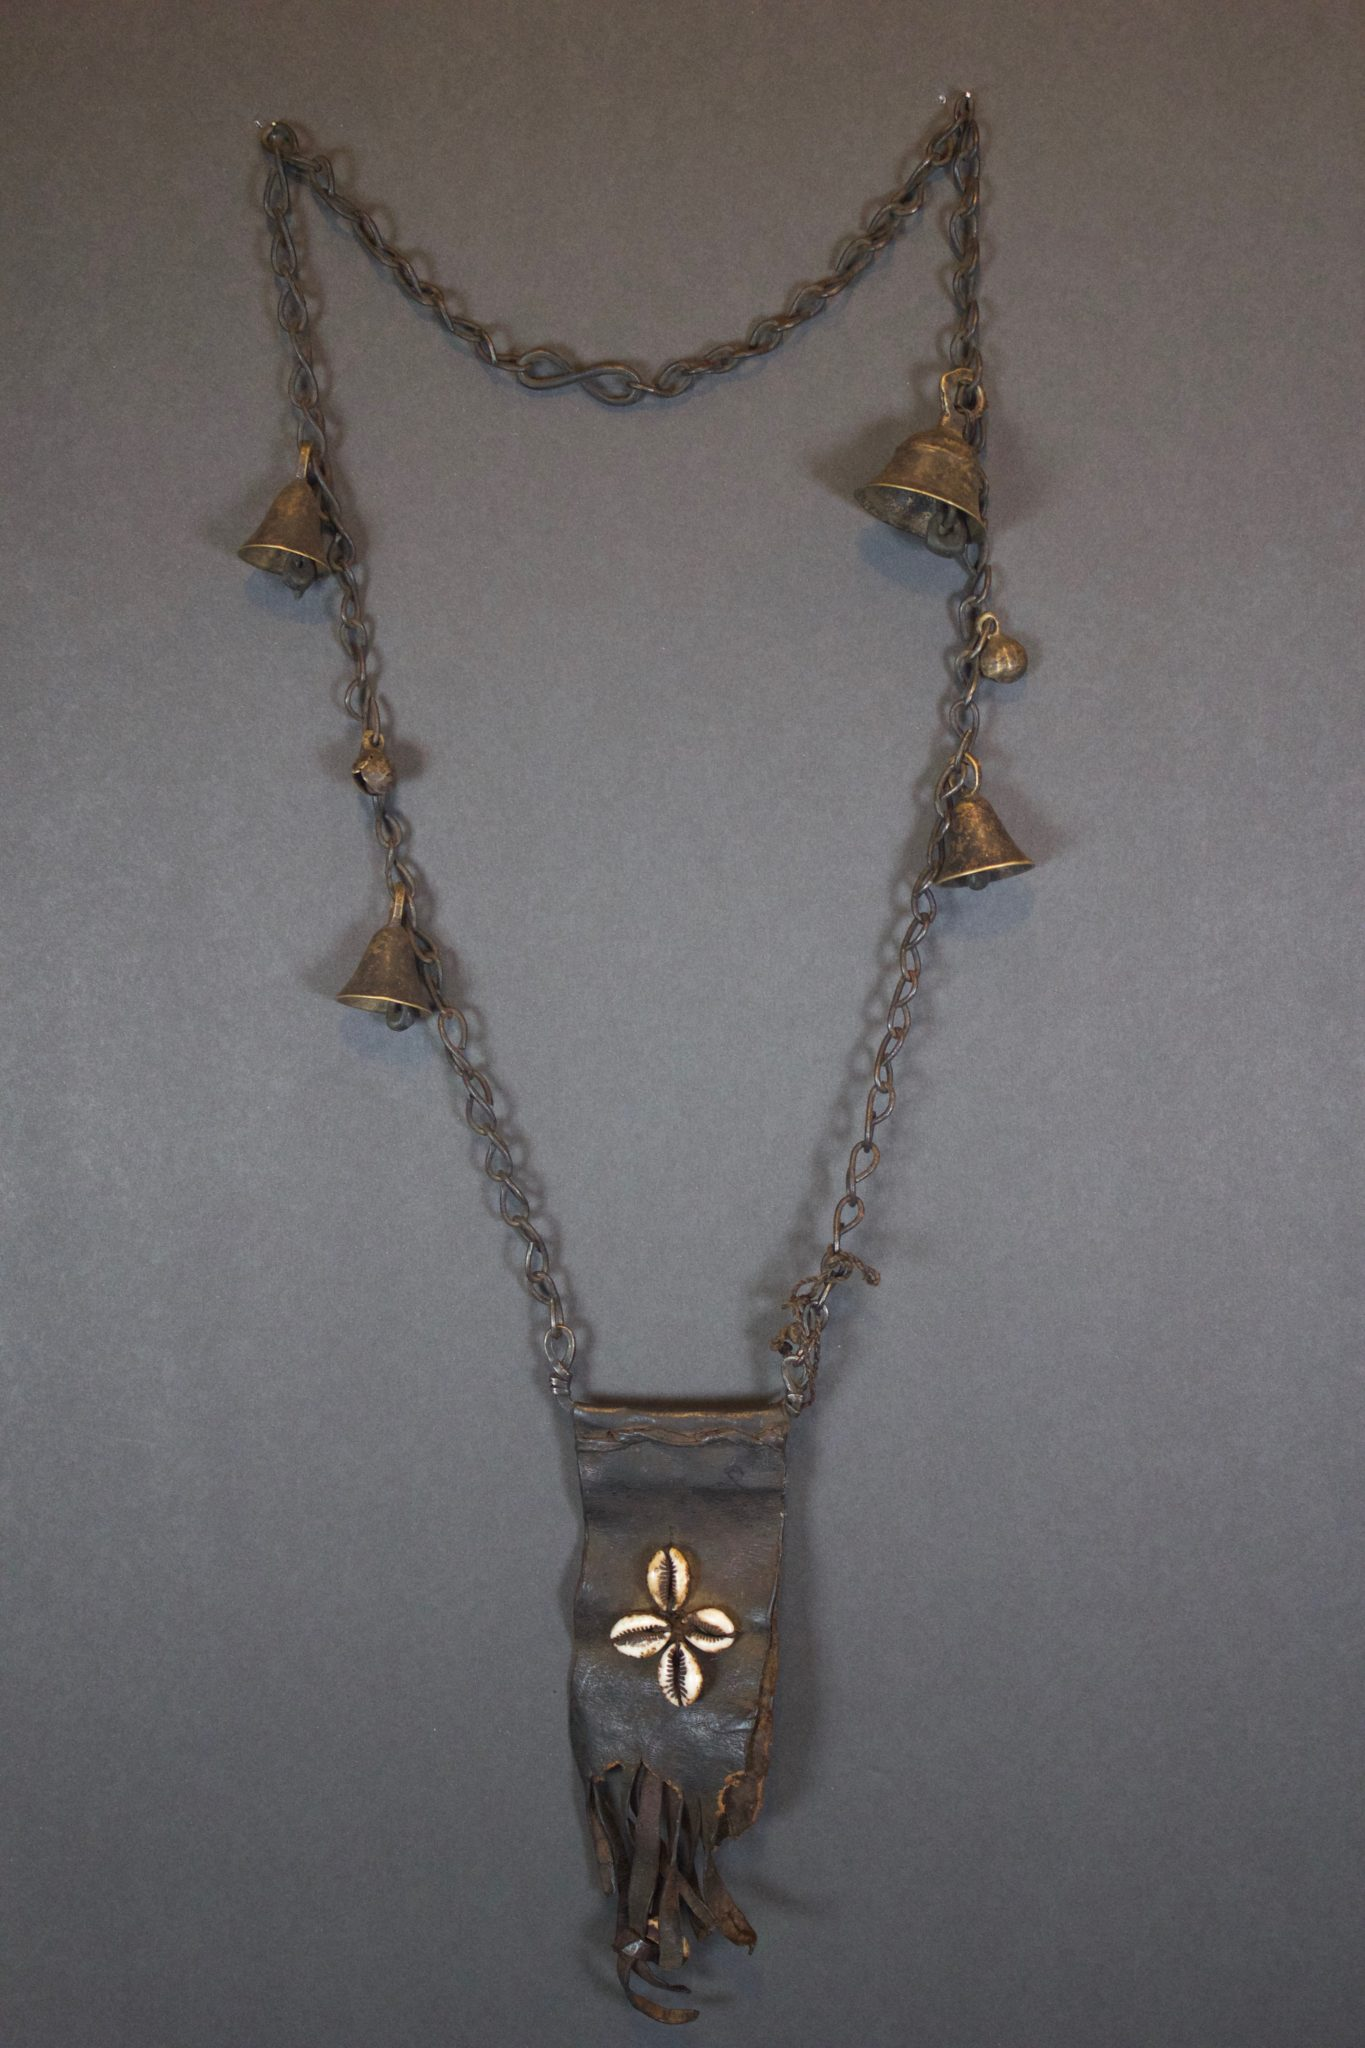 """Shaman Bell and Amulet Necklace, Nepal, Early 20th c.,Shaman Bell and Amulet Necklace, Nepal, Early 20th c., Leather Amulet with the four cowrie shells and brass conical bells on a chain, is a sacred ritual necklace is wornto facilitate entering a trance state. The bells make a nice sound when worn or hung in the wind. The sound represents a caravan of yaks coming down a mountain creating a magical link to their ancestors who migrated over the Himalayas from Tibet to Nepal, 28 ½"""" x 3 ¼"""" x 1"""", $295"""